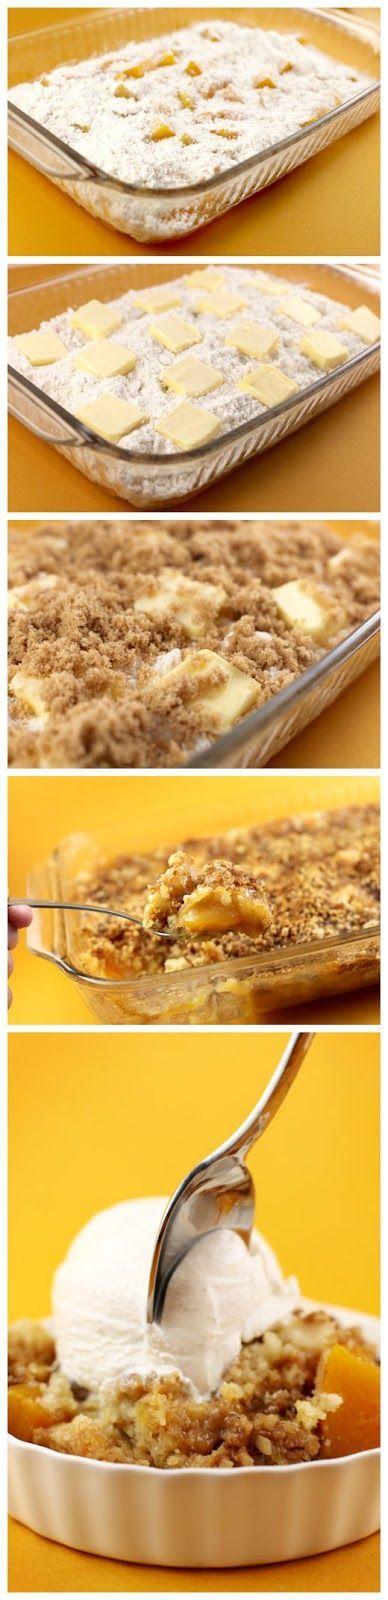 Ridiculously Easy 24.5 oz jar of sliced peaches in light syrup 1 package yellow cake mix 1 stick butter (1/2 cup) cut into 16 pieces 1 cup brown sugar 1/2 cup chopped walnuts Read full recipeson:bakerella